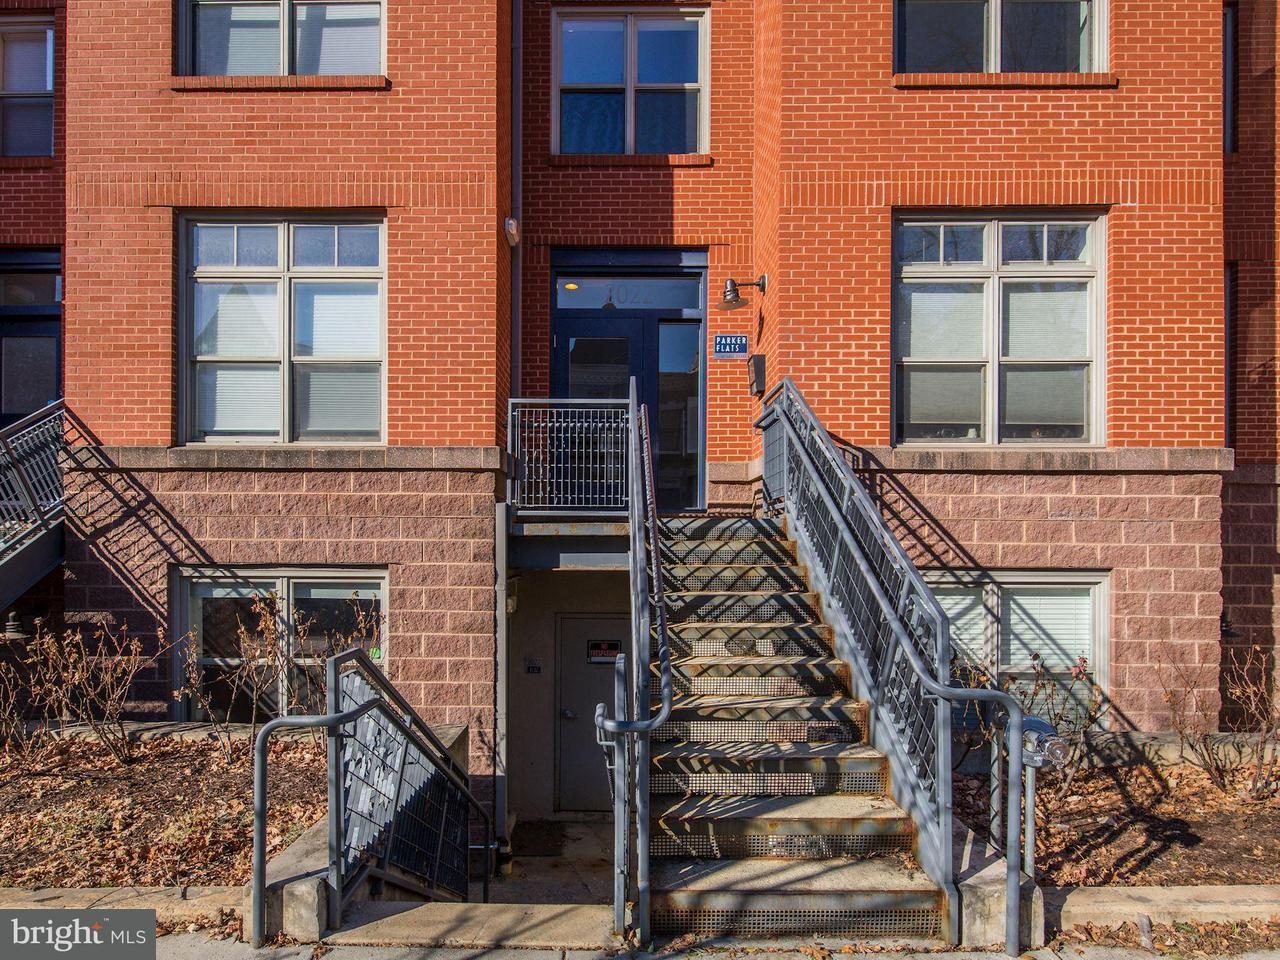 Condominium for Sale at 2022 Flagler Pl Nw #Fl02 2022 Flagler Pl Nw #Fl02 Washington, District Of Columbia 20001 United States